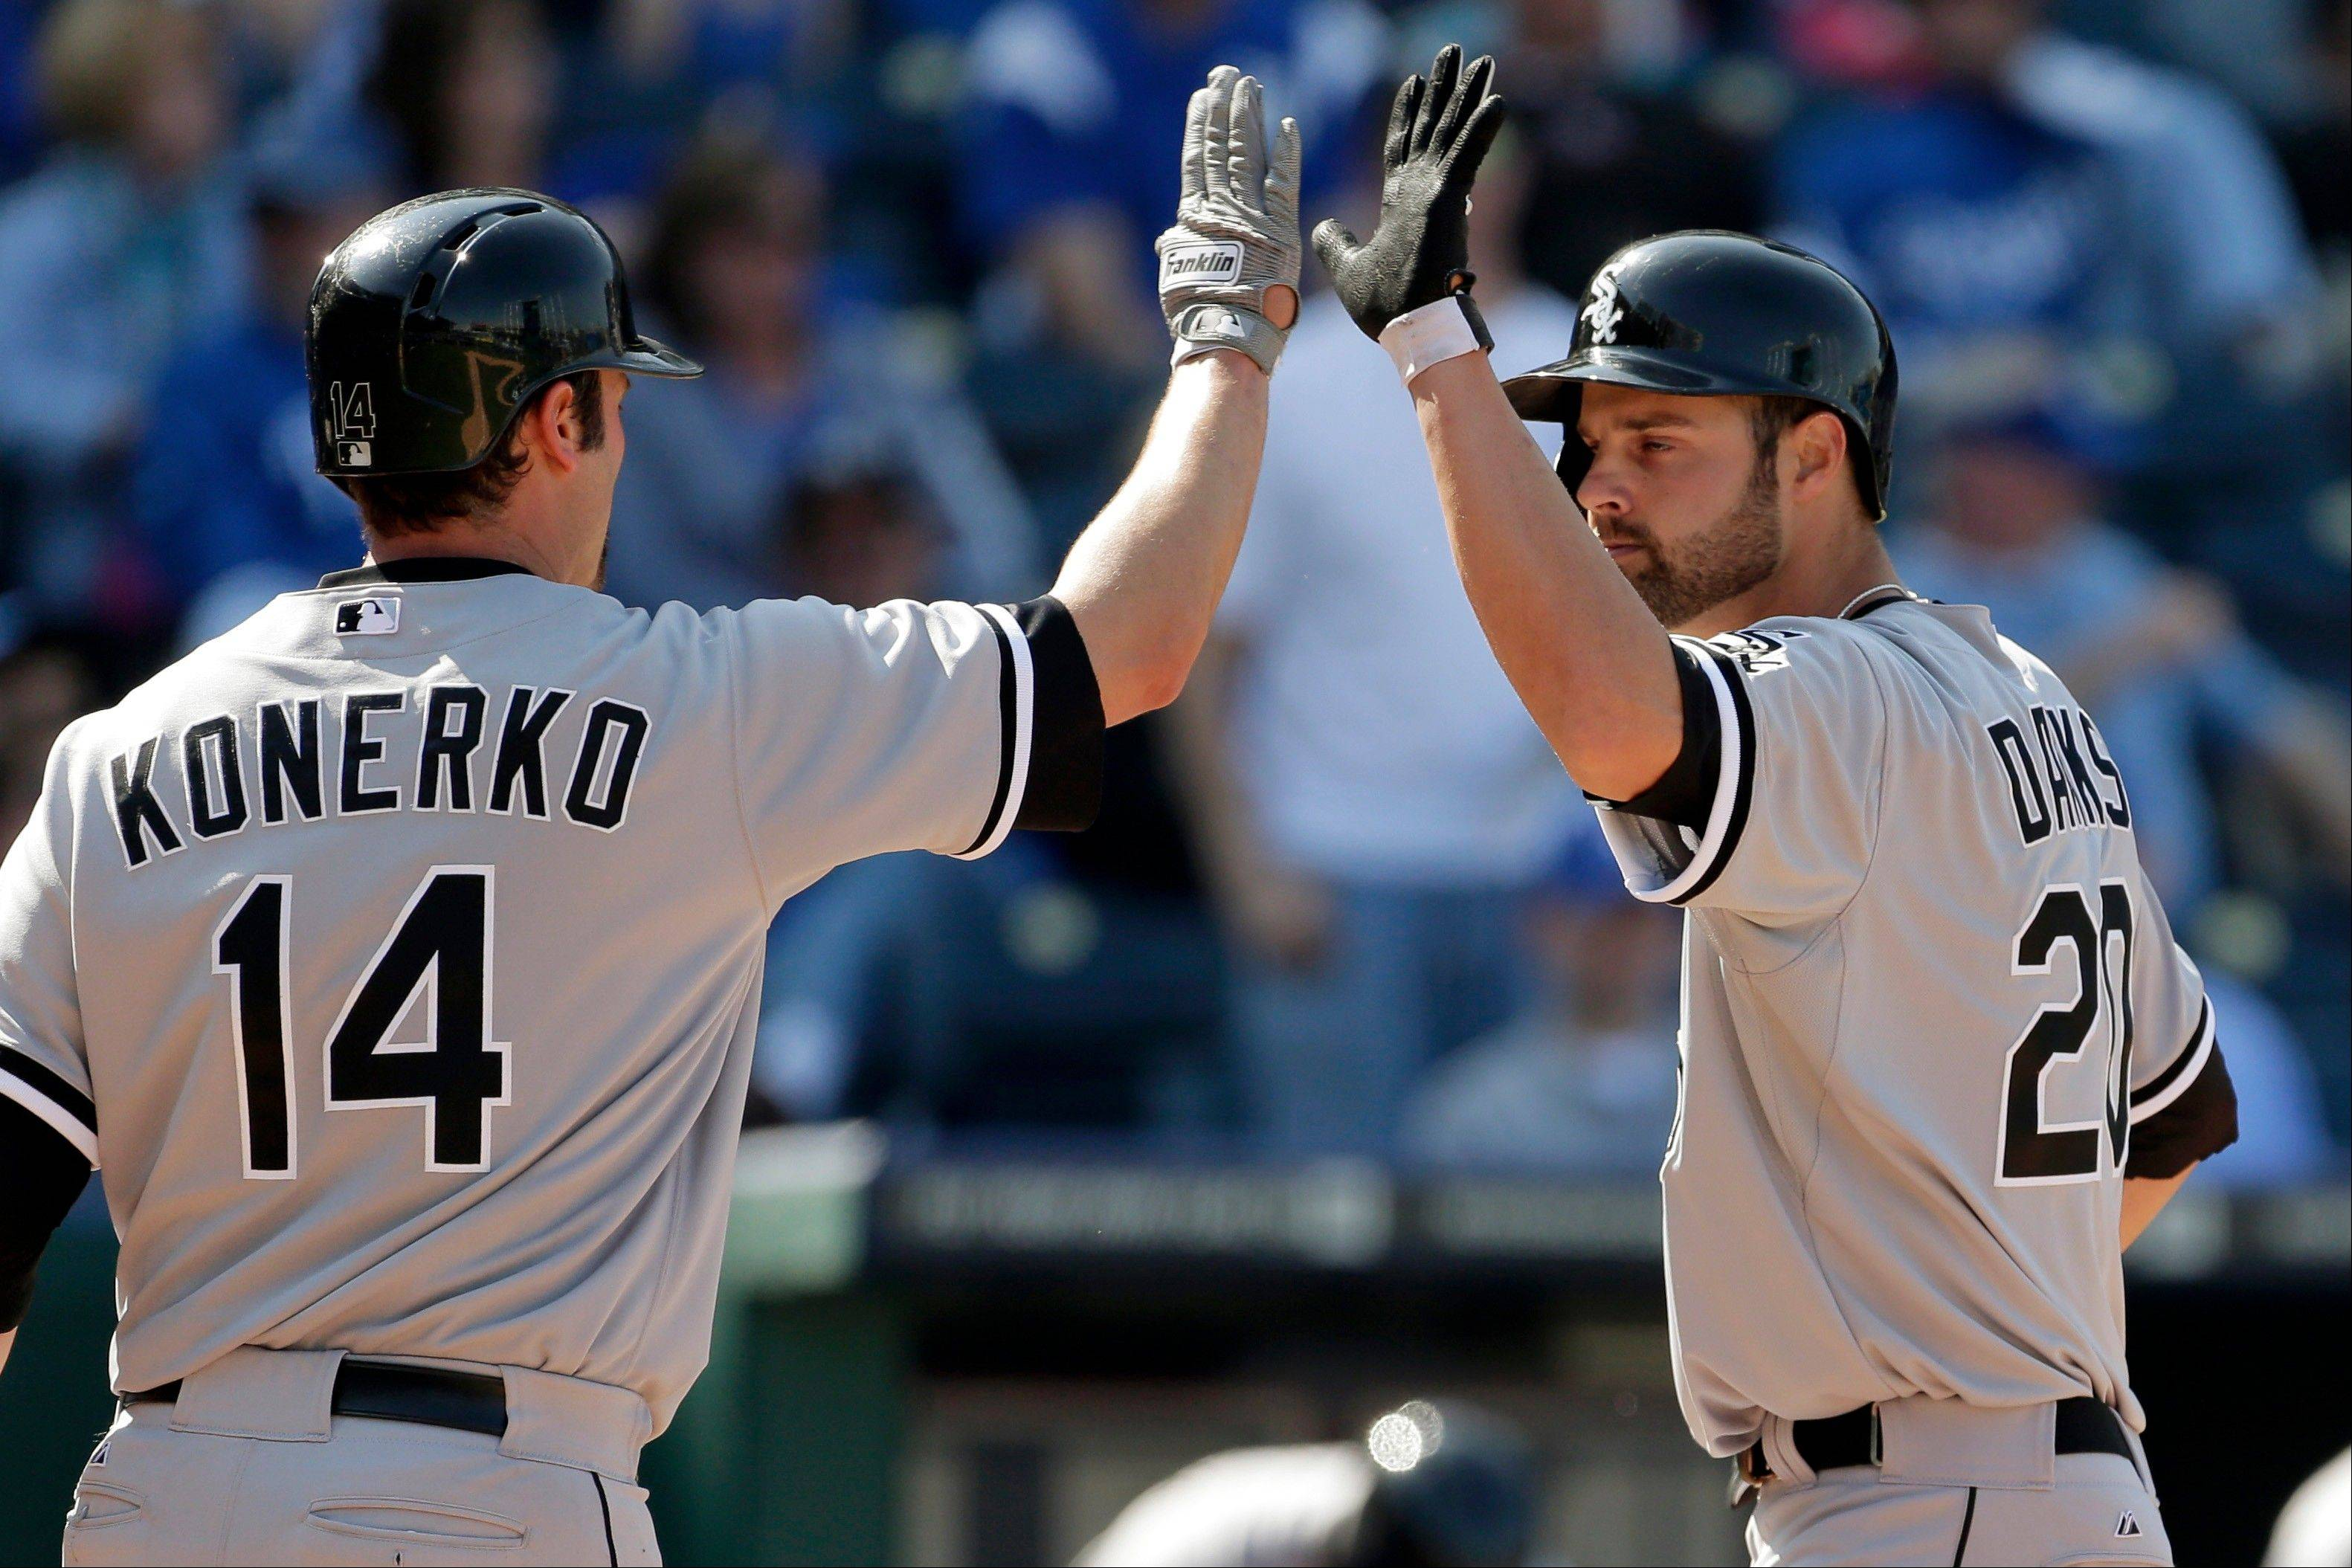 The White Sox' Jordan Danks, right, celebrates with Paul Konerko after hitting a solo home run in the 11th inning Monday against the Royals in Kansas City, Mo.